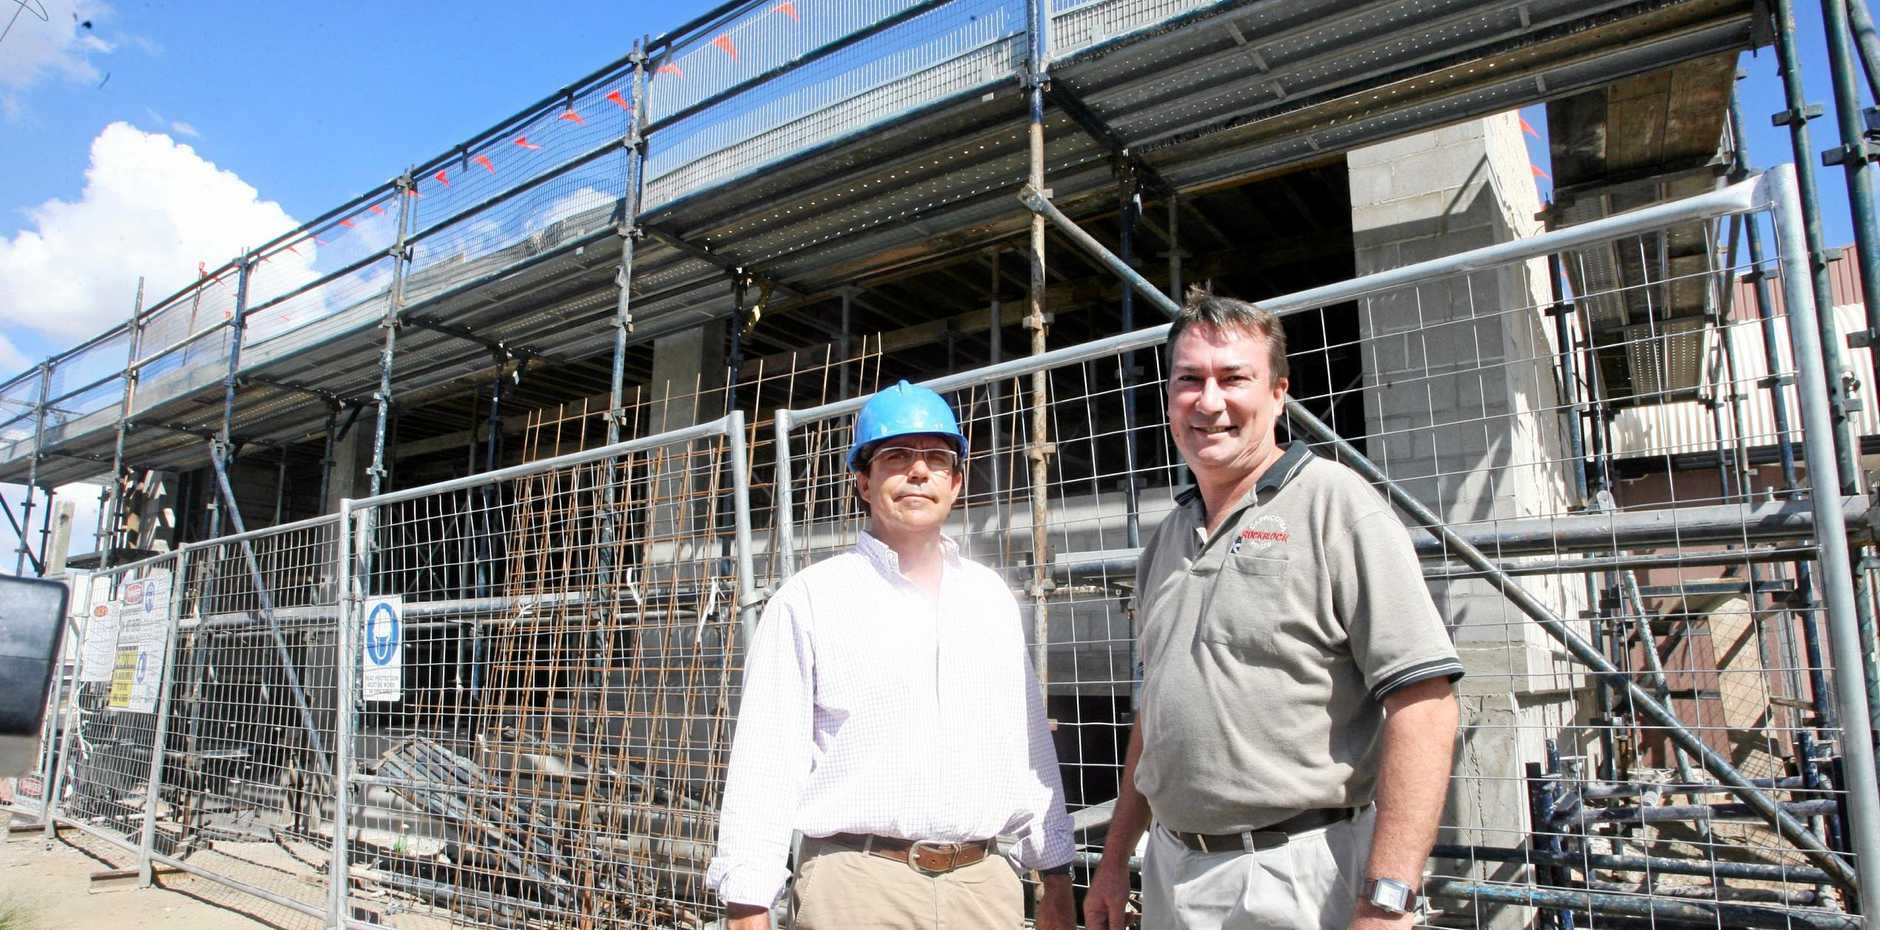 Owner/builder Peter Comino (left) and Paul Mills discuss the construction of the CBD Executive Apartments in 2008.